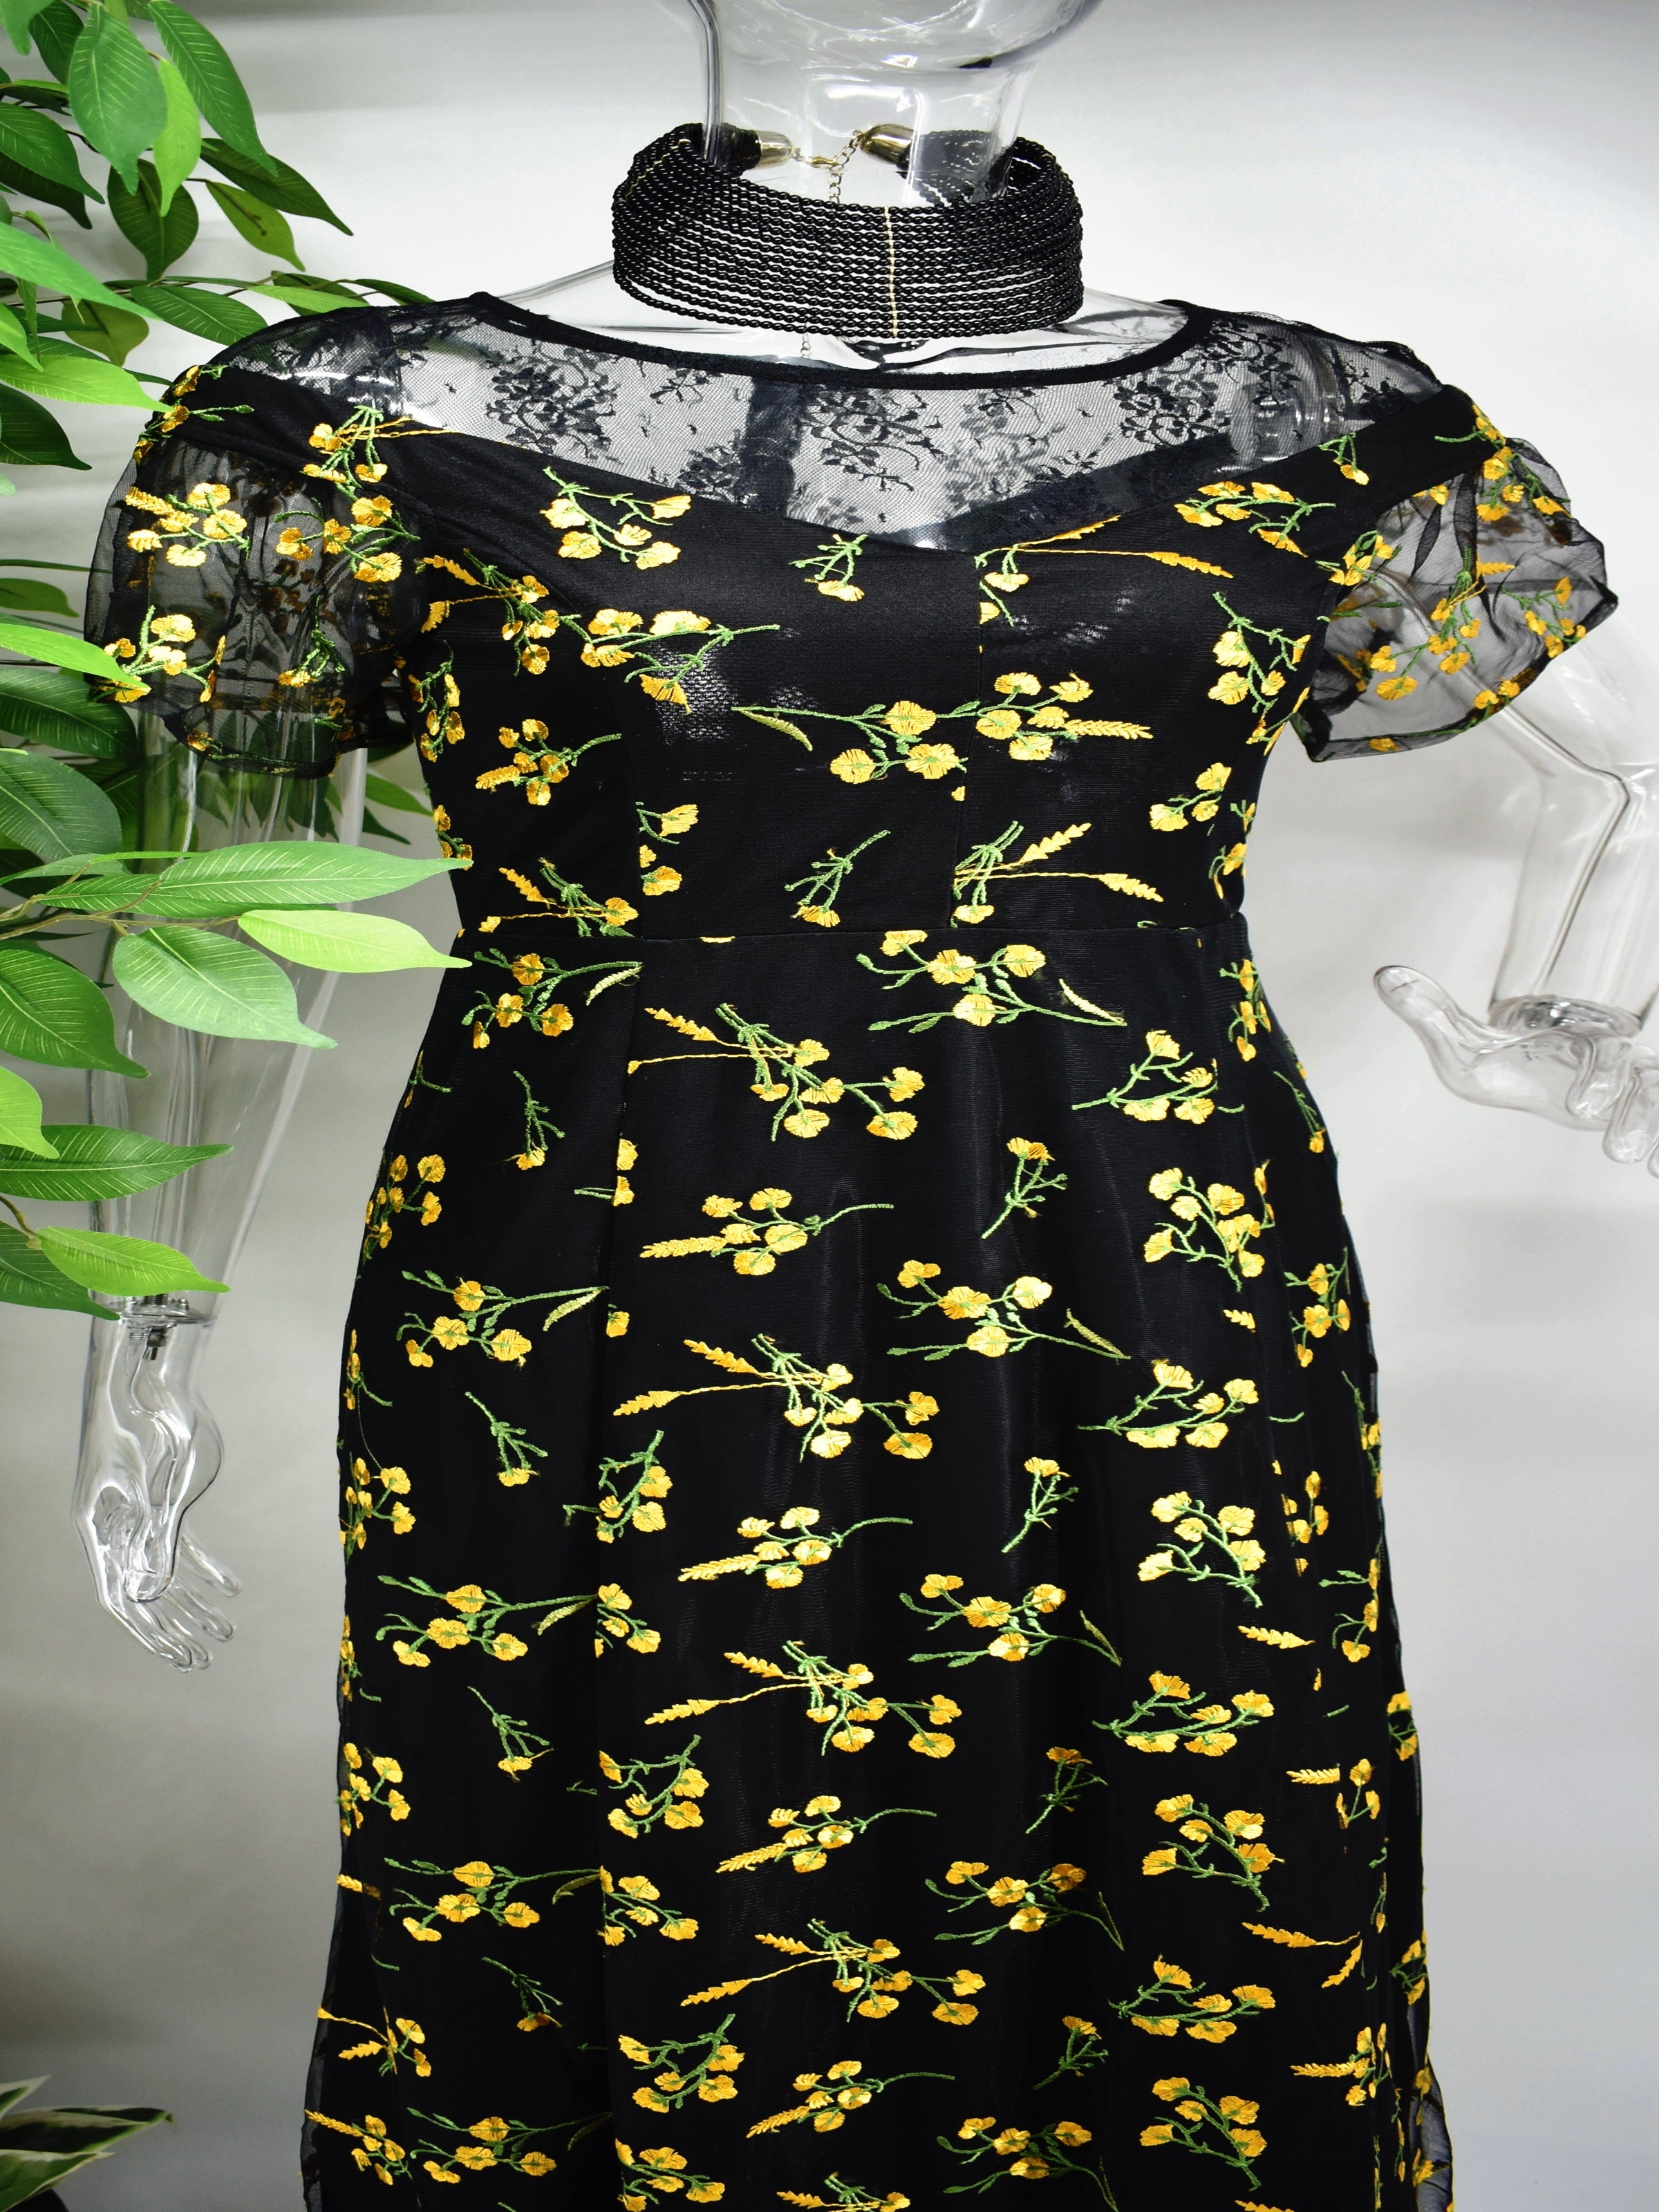 Our Beryle maxi black floral dress is a modern take on a classic silhouette.